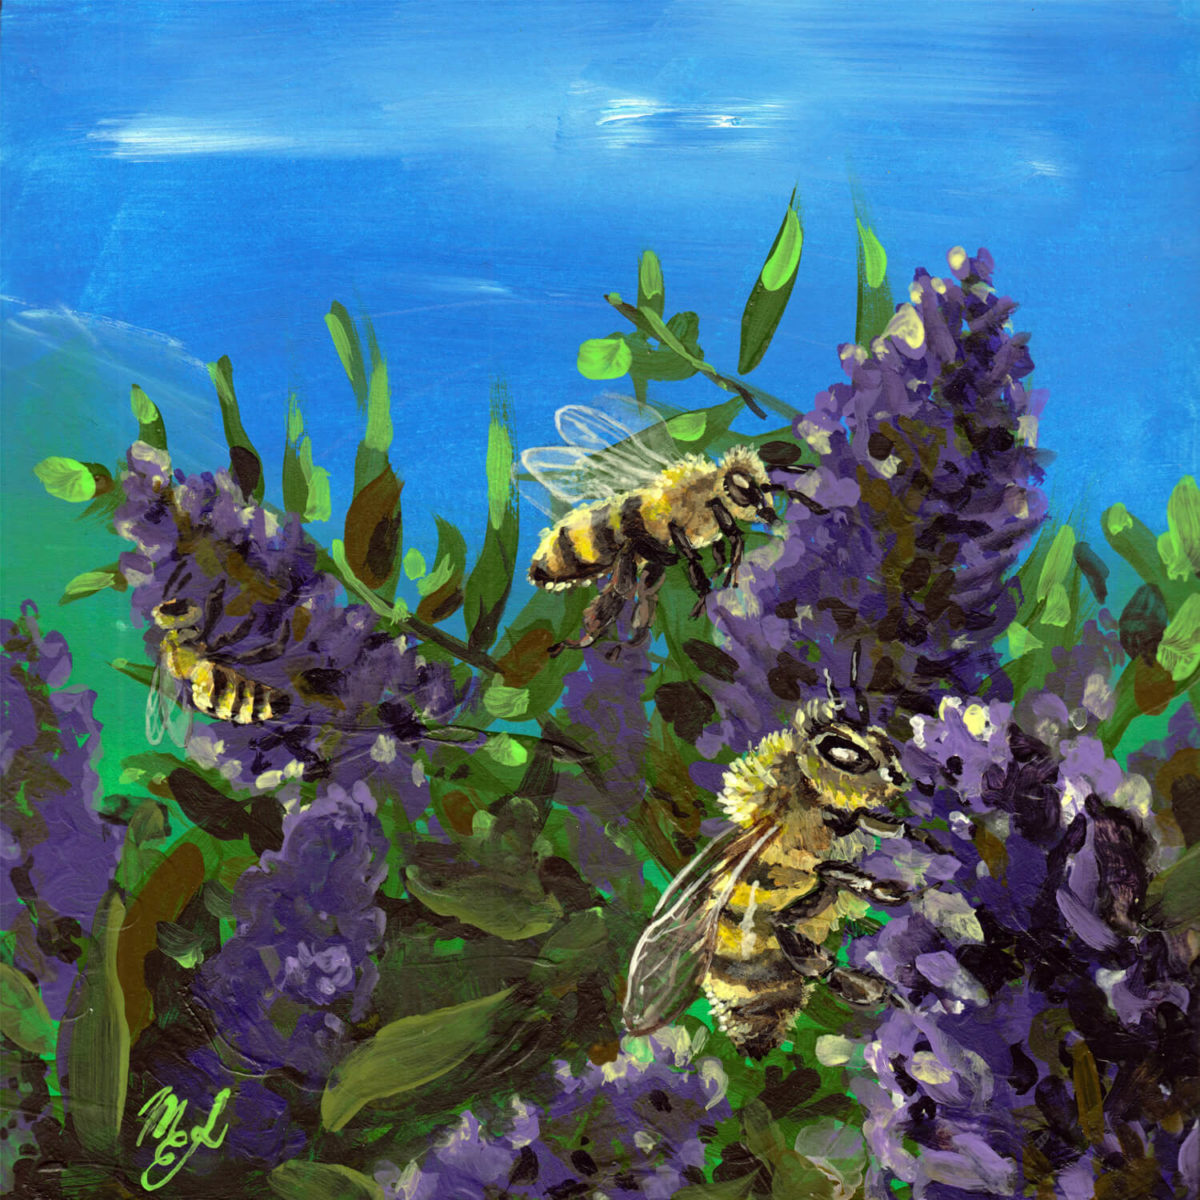 Acrylic painting of honeybees and flowers